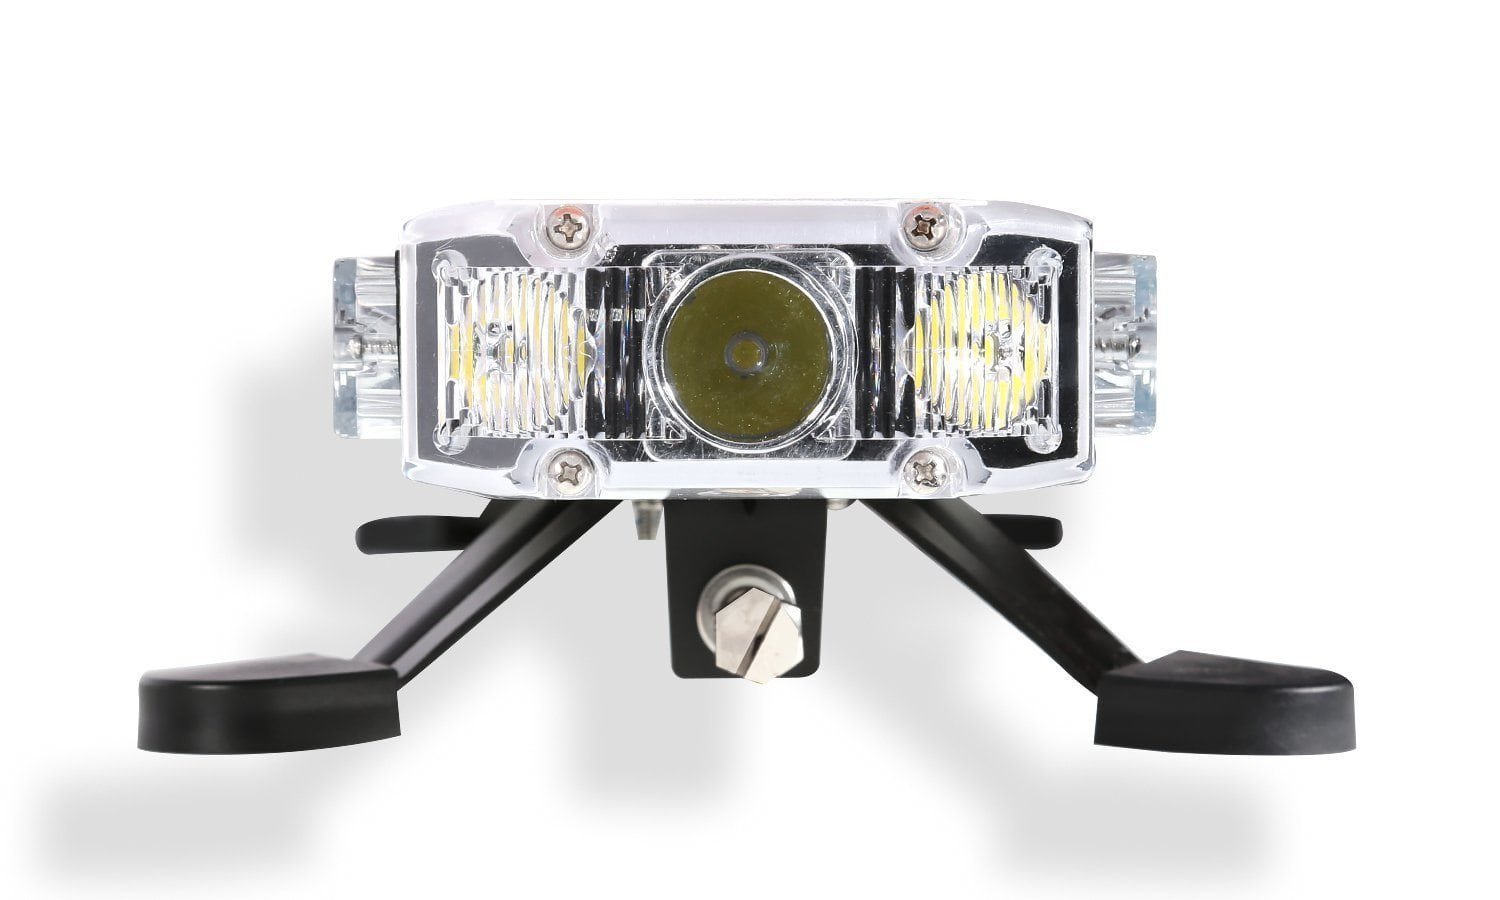 p 69 a 1183_4_1 emergency led light bar  at fashall.co